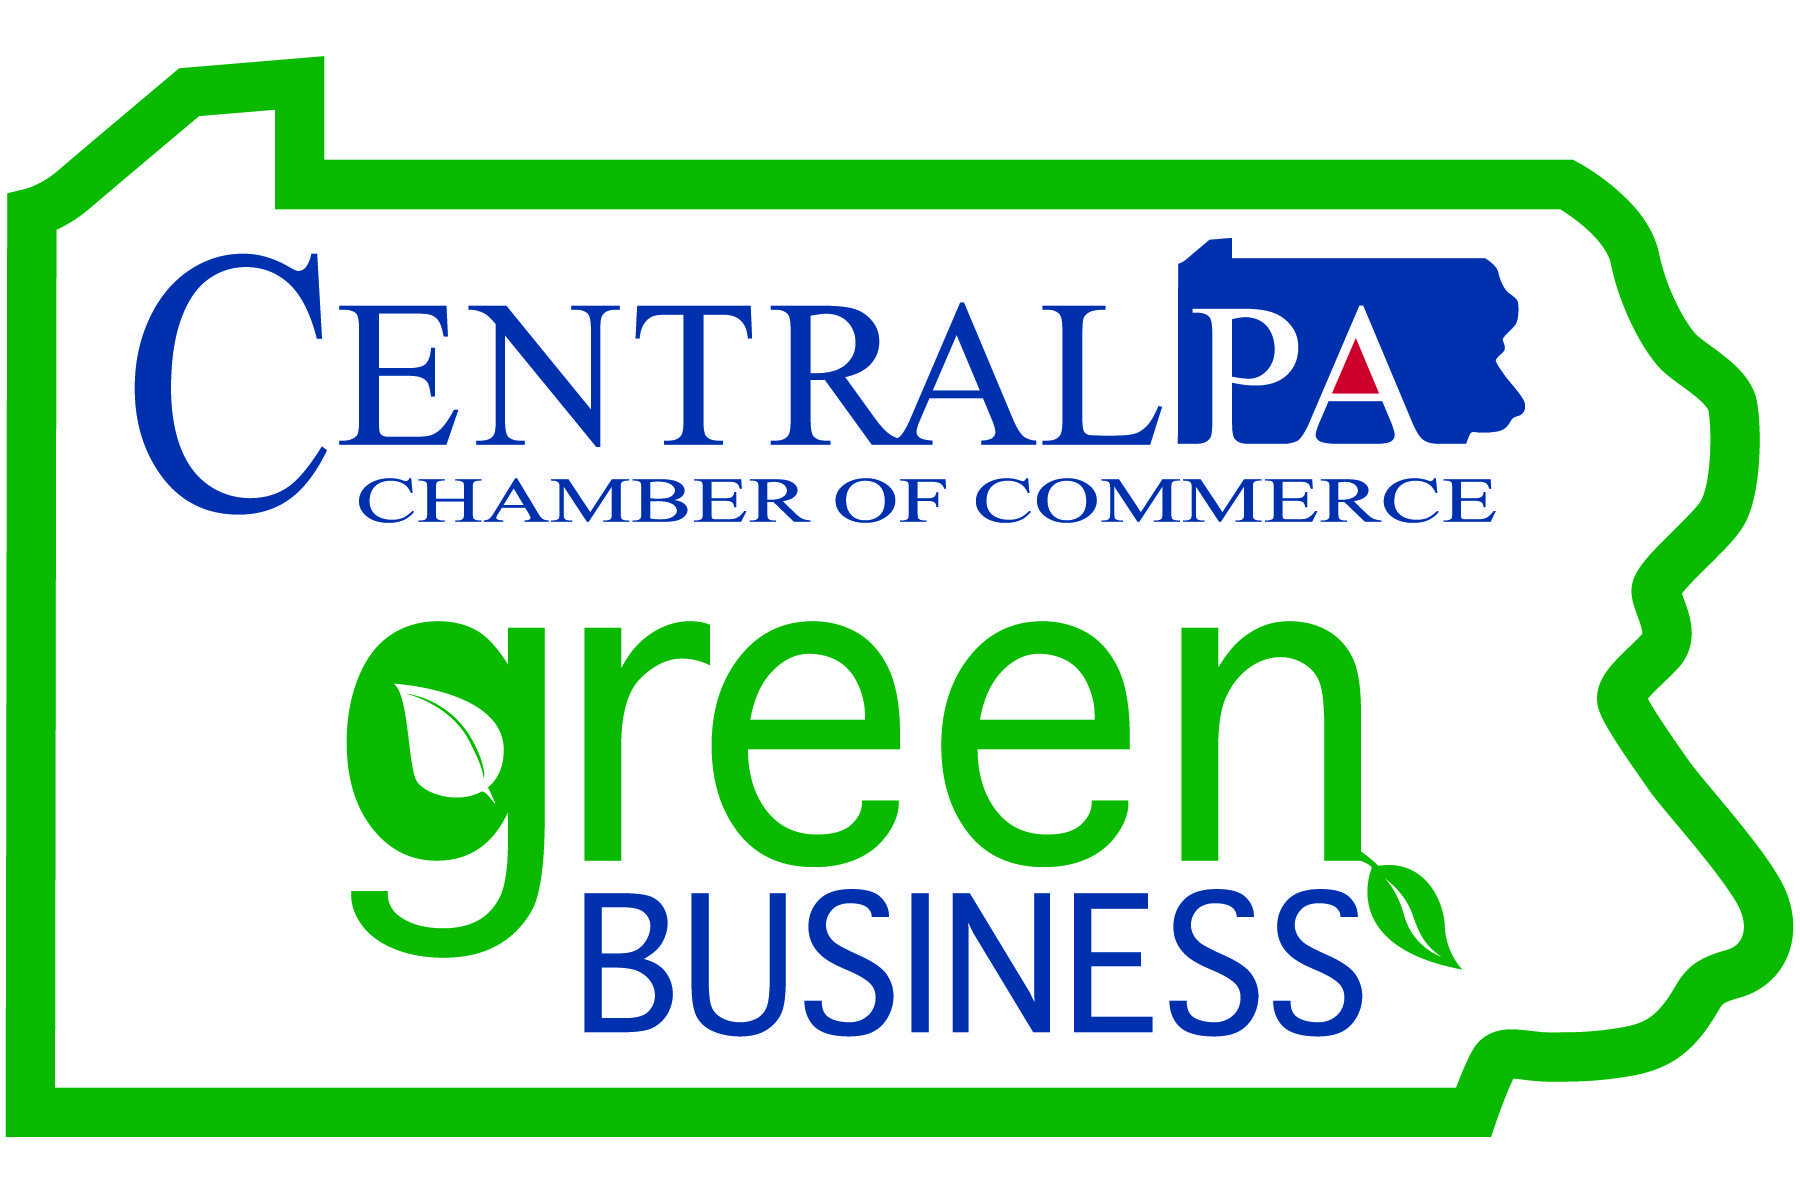 Central pa chamber receives national attention central for Chamber of commerce